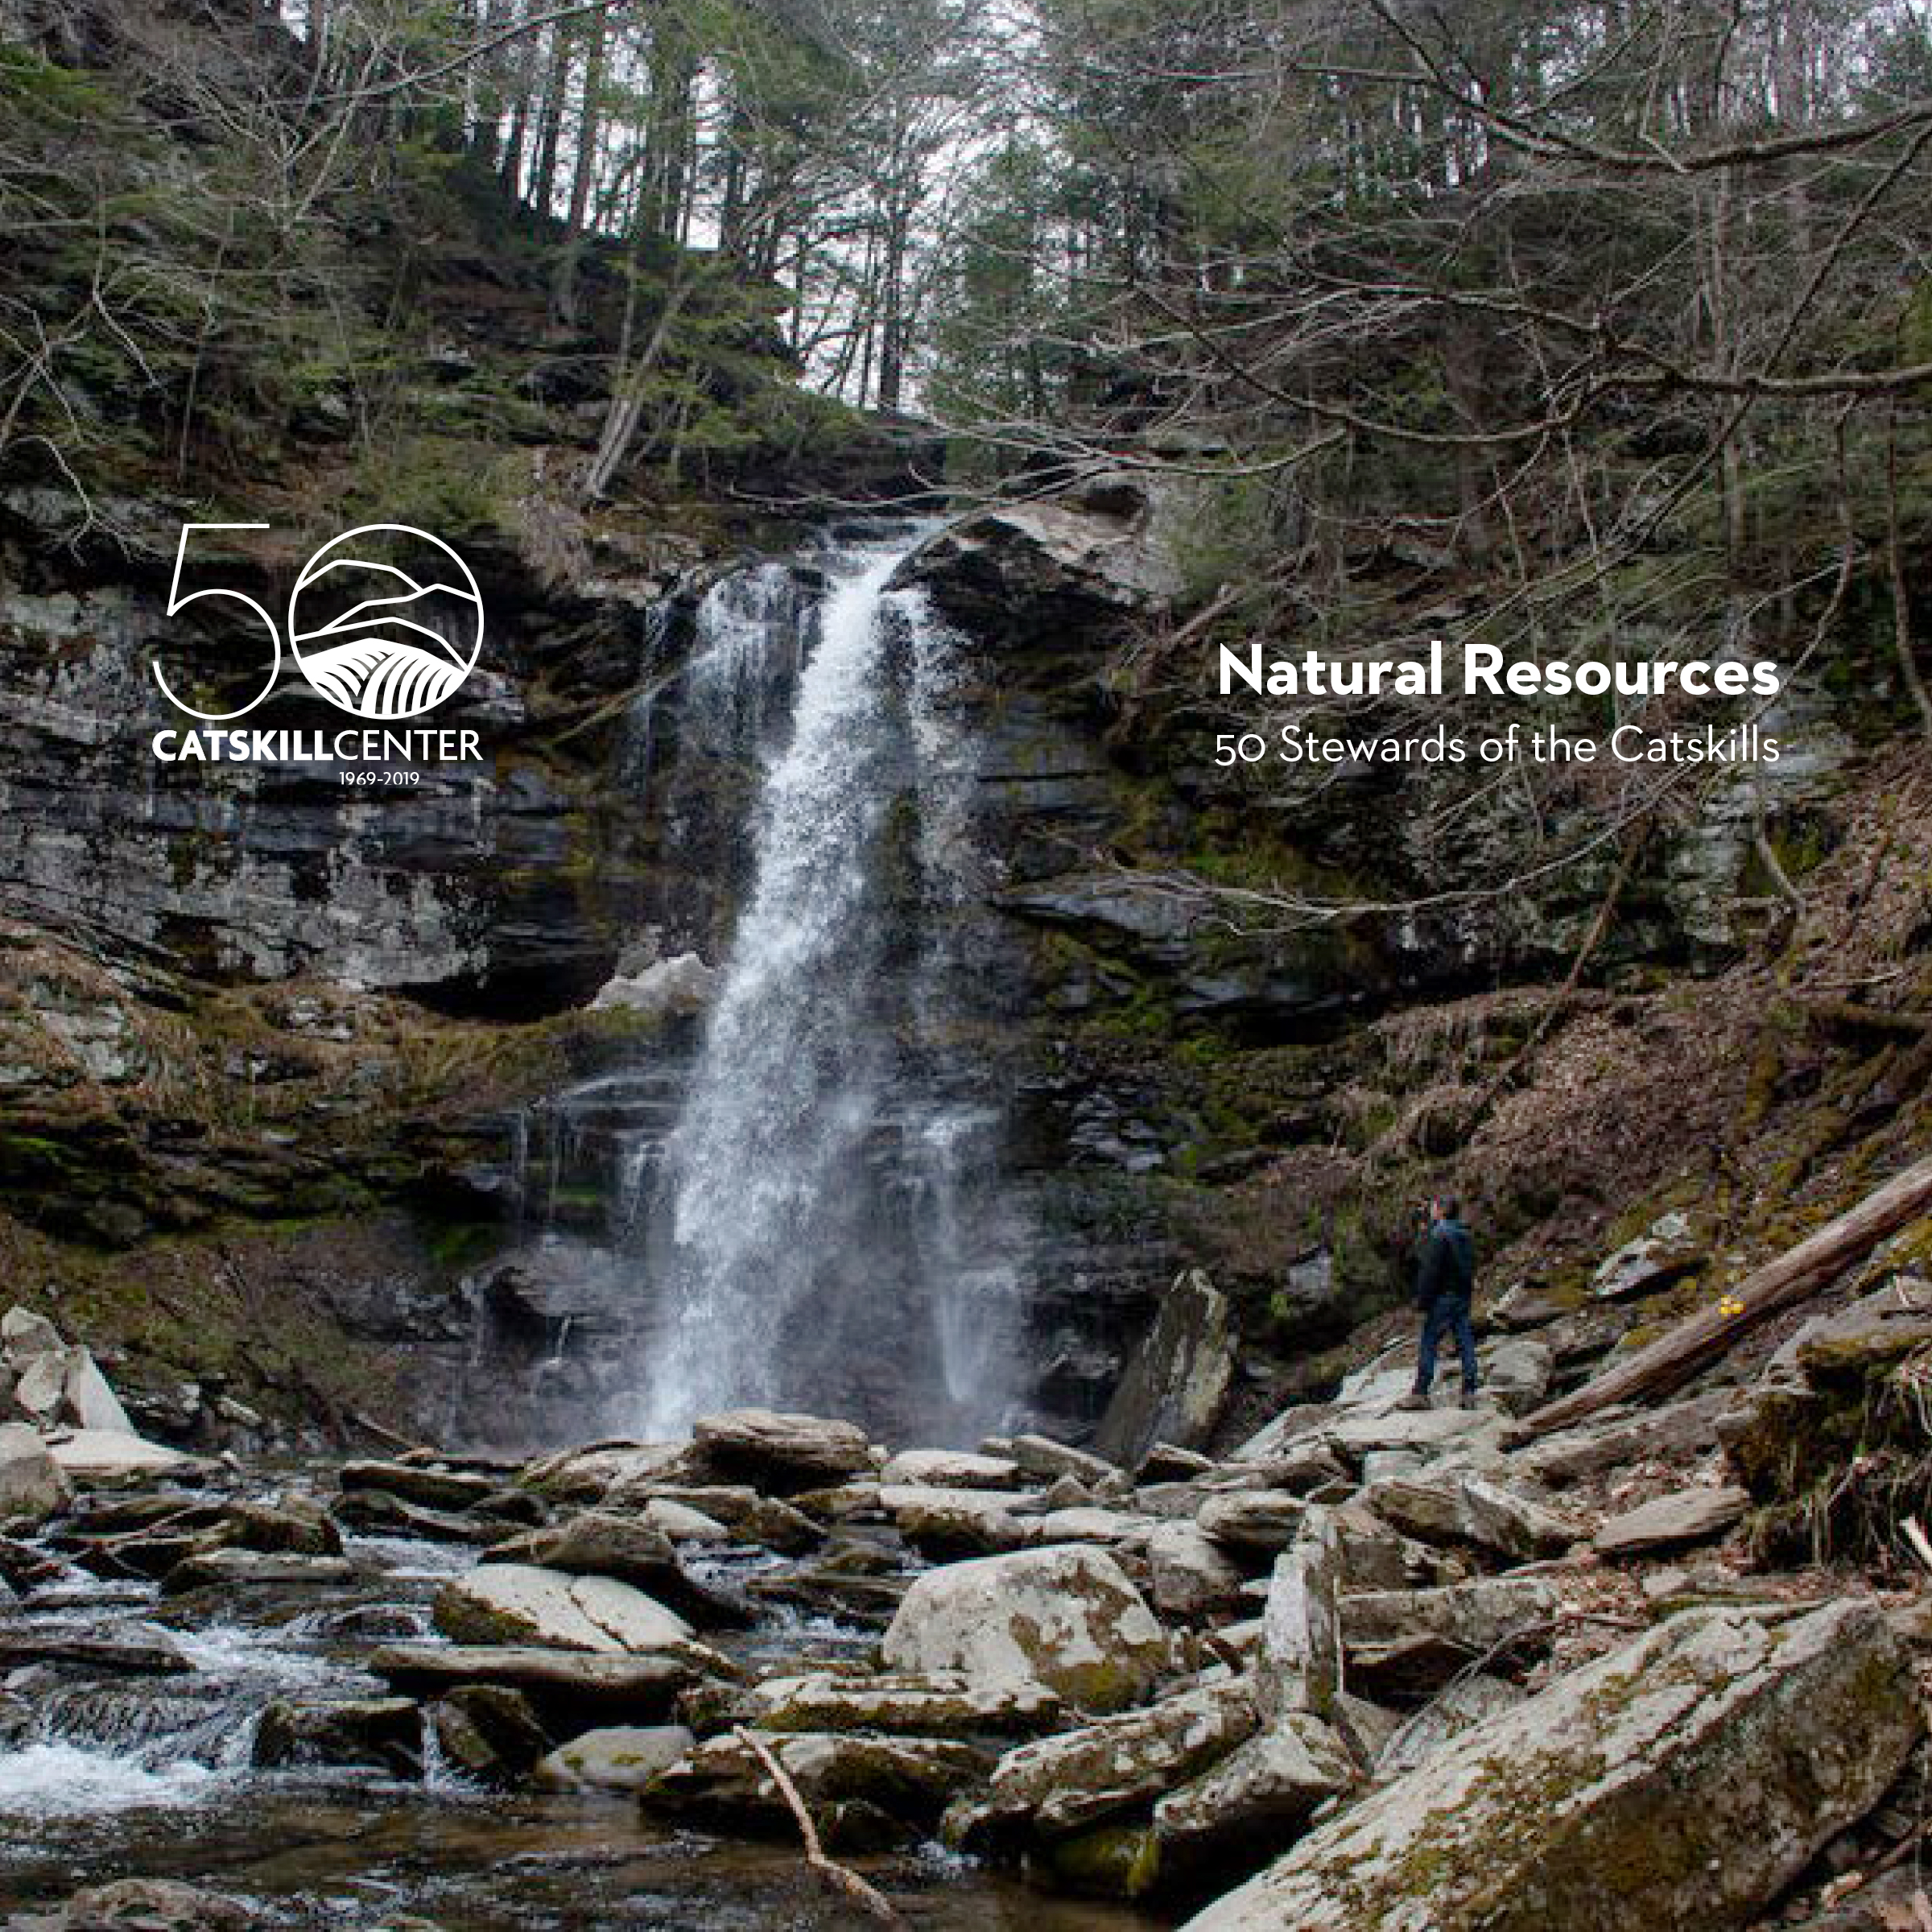 a new Catskill Center publication, Natural Resources: 50 Stewards of the Catskills, will be unveiled - The Catskill Center continues its 50th anniversary celebration this year with the publication of Natural Resources: 50 Stewards of the Catskills.This book celebrates 50 individuals in the region for their contributions to the Catskills' environment, economy and culture.Meet the book — and the stewards.